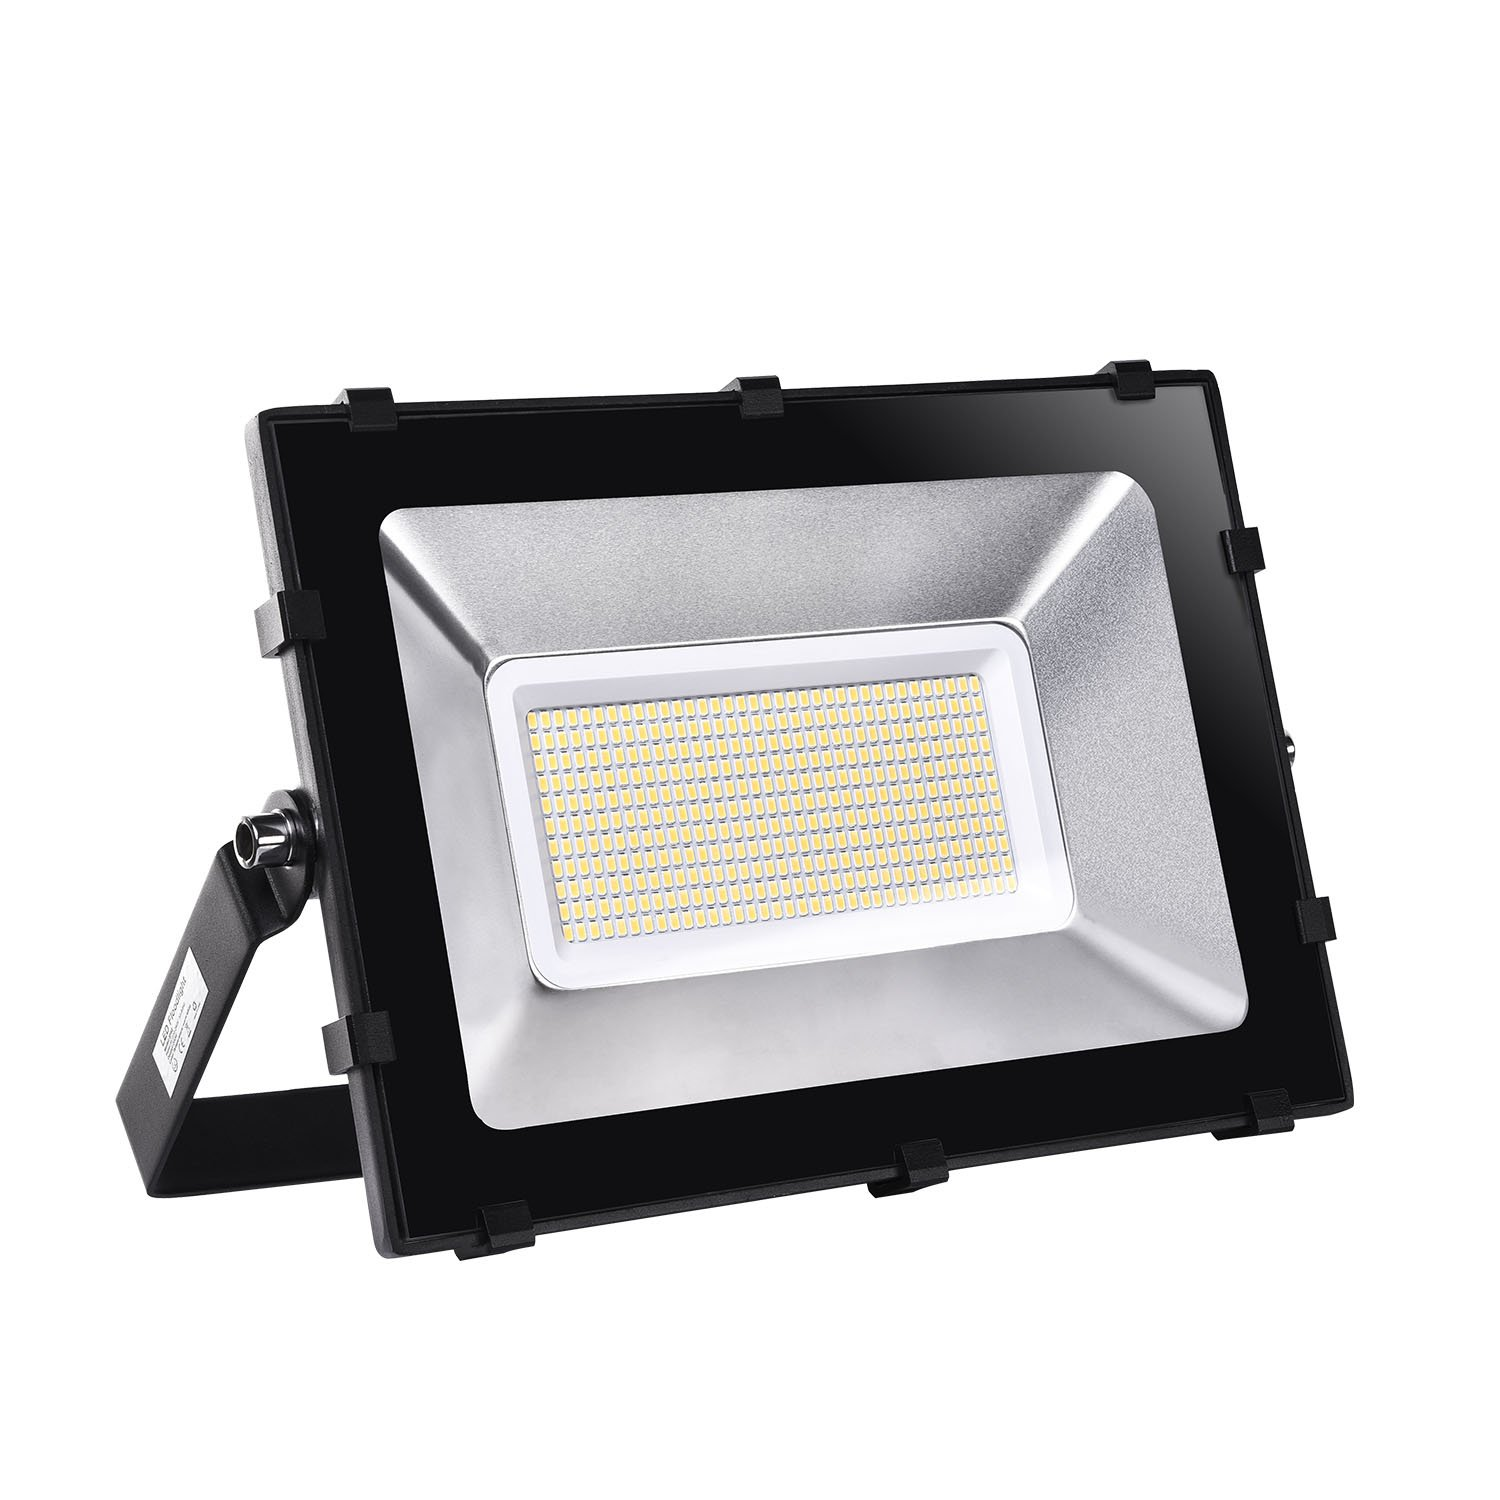 Viugreum 200W LED Outdoor Flood Lights,Waterproof IP65,24000LM,Warm White(2800-3200K), Landscape Spotlights,Super Bright Security Stadium Lights for Garden,Yard,Warehouse,Square,Billboard,Factory